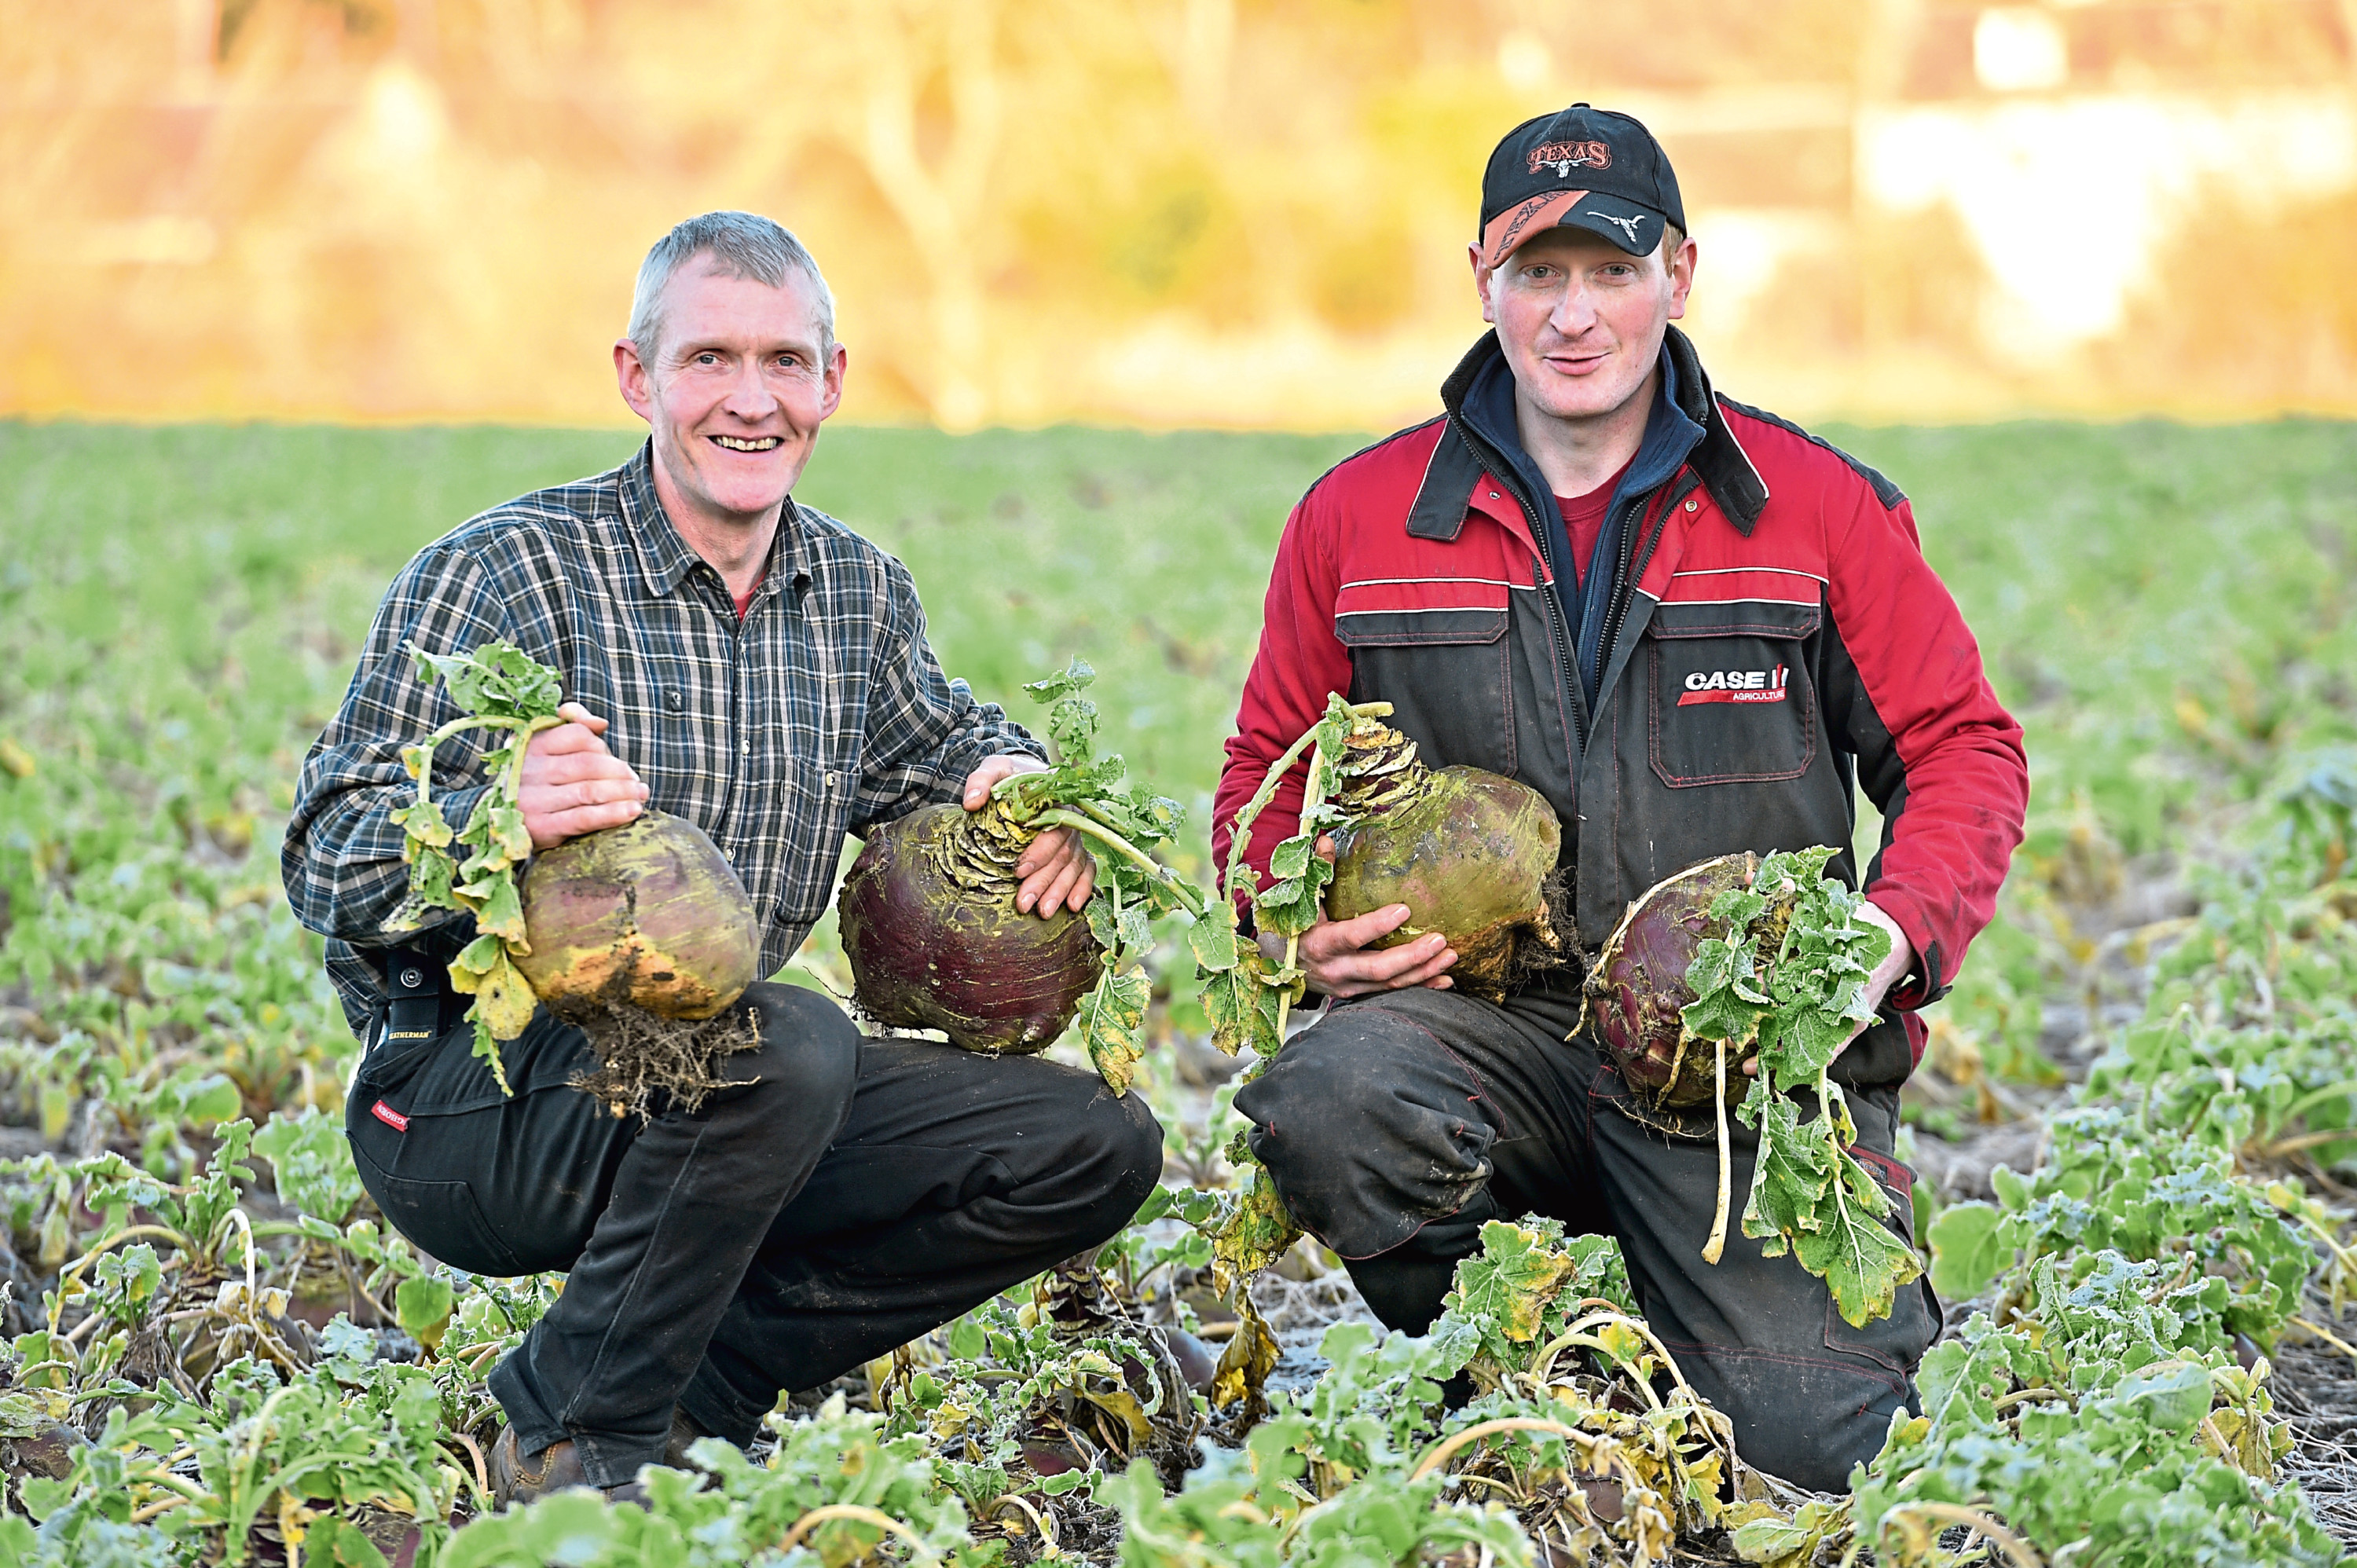 Rodney Blackhall, left, and his nephew Euan Blackhall with their champion turnips at Balbridie Farm, Crathes.